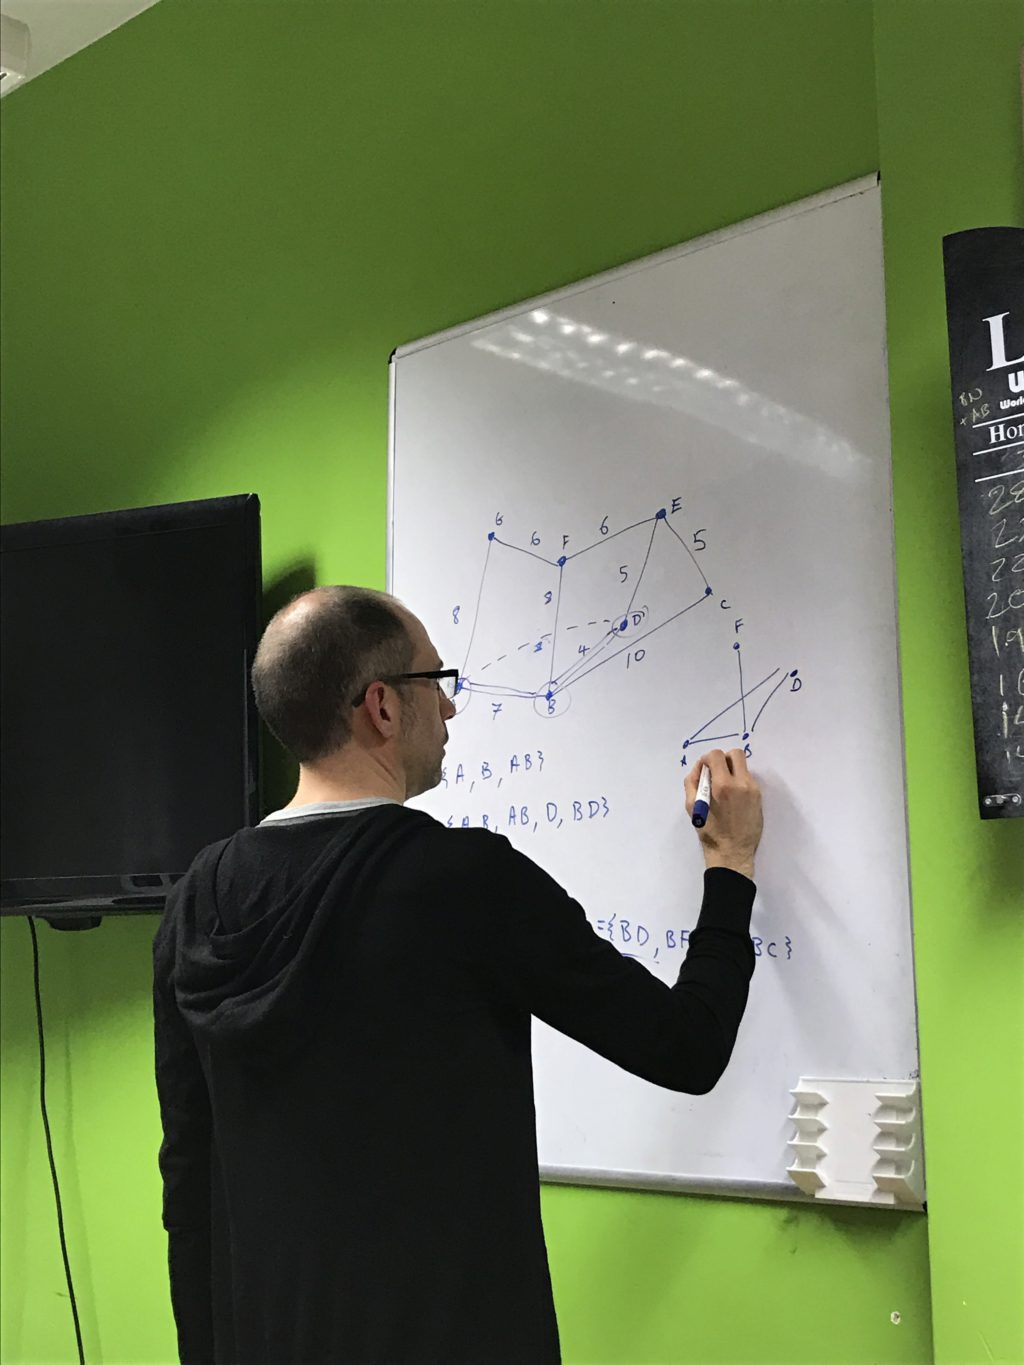 Murray Steele is confused by the algorithm and draws a tree to try and understand